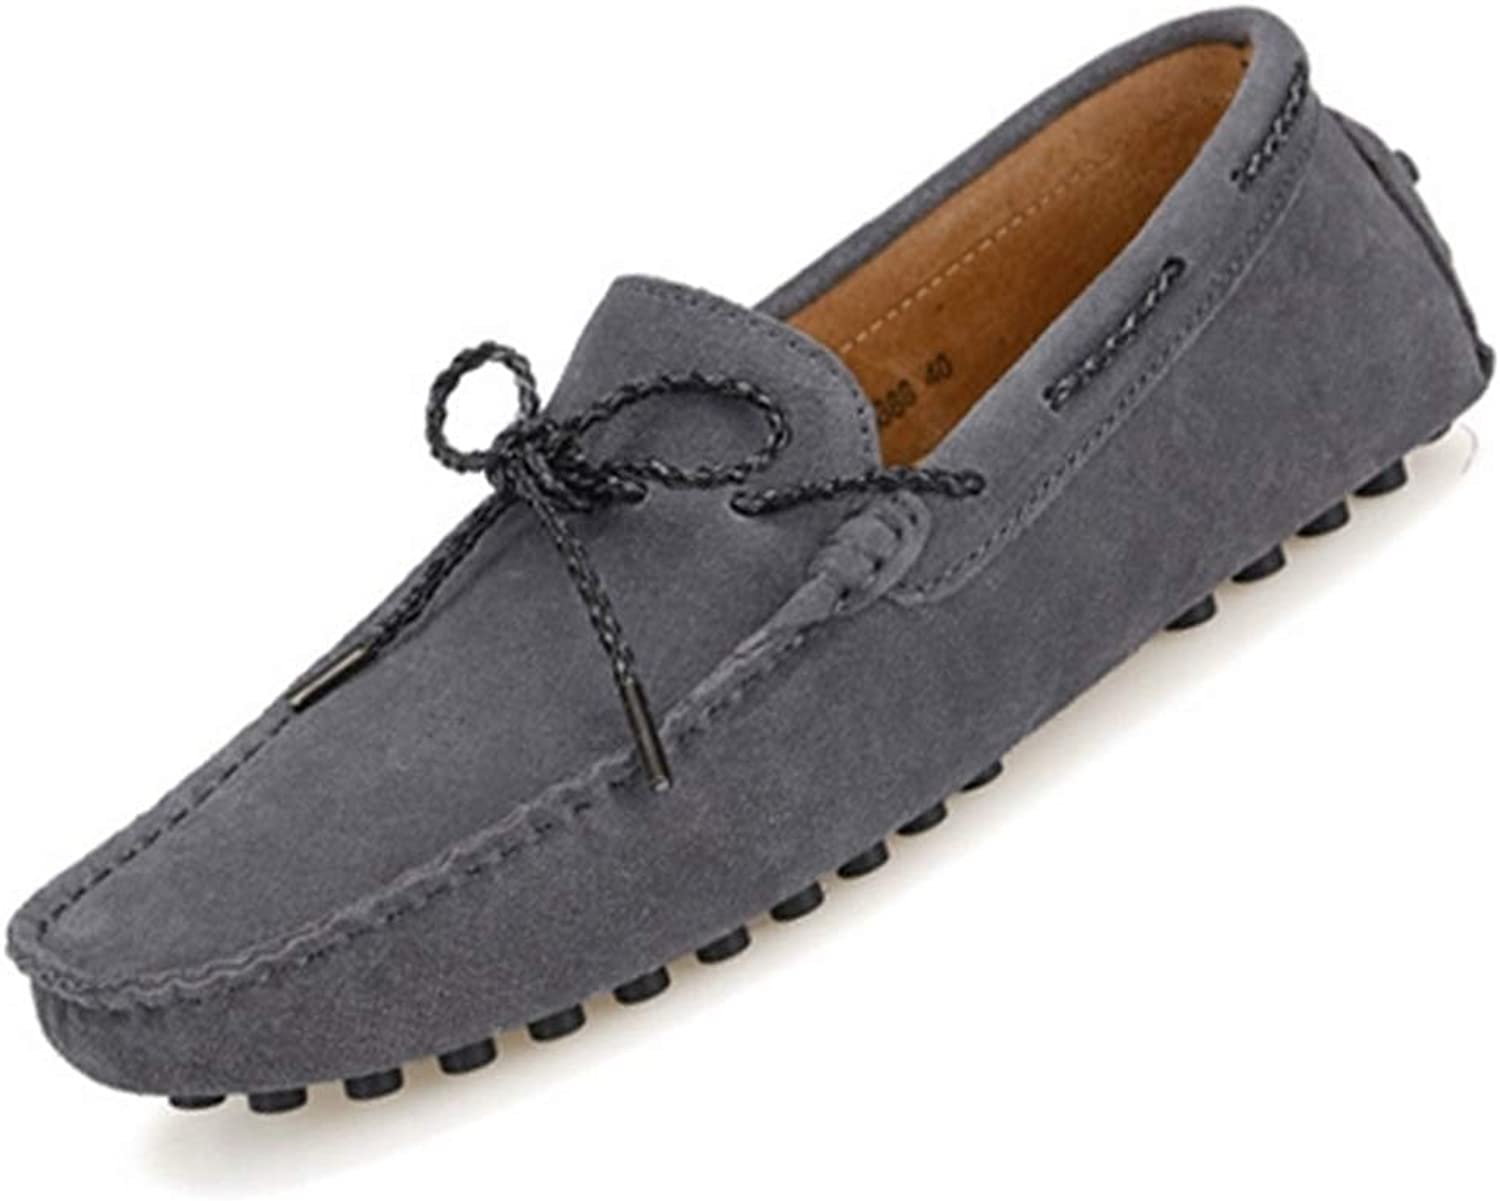 ZHRUI Man Moccasin Fashion Style Solid Adults Loafers Men Driving shoes (color   Dark grey, Size   9=43 EU)